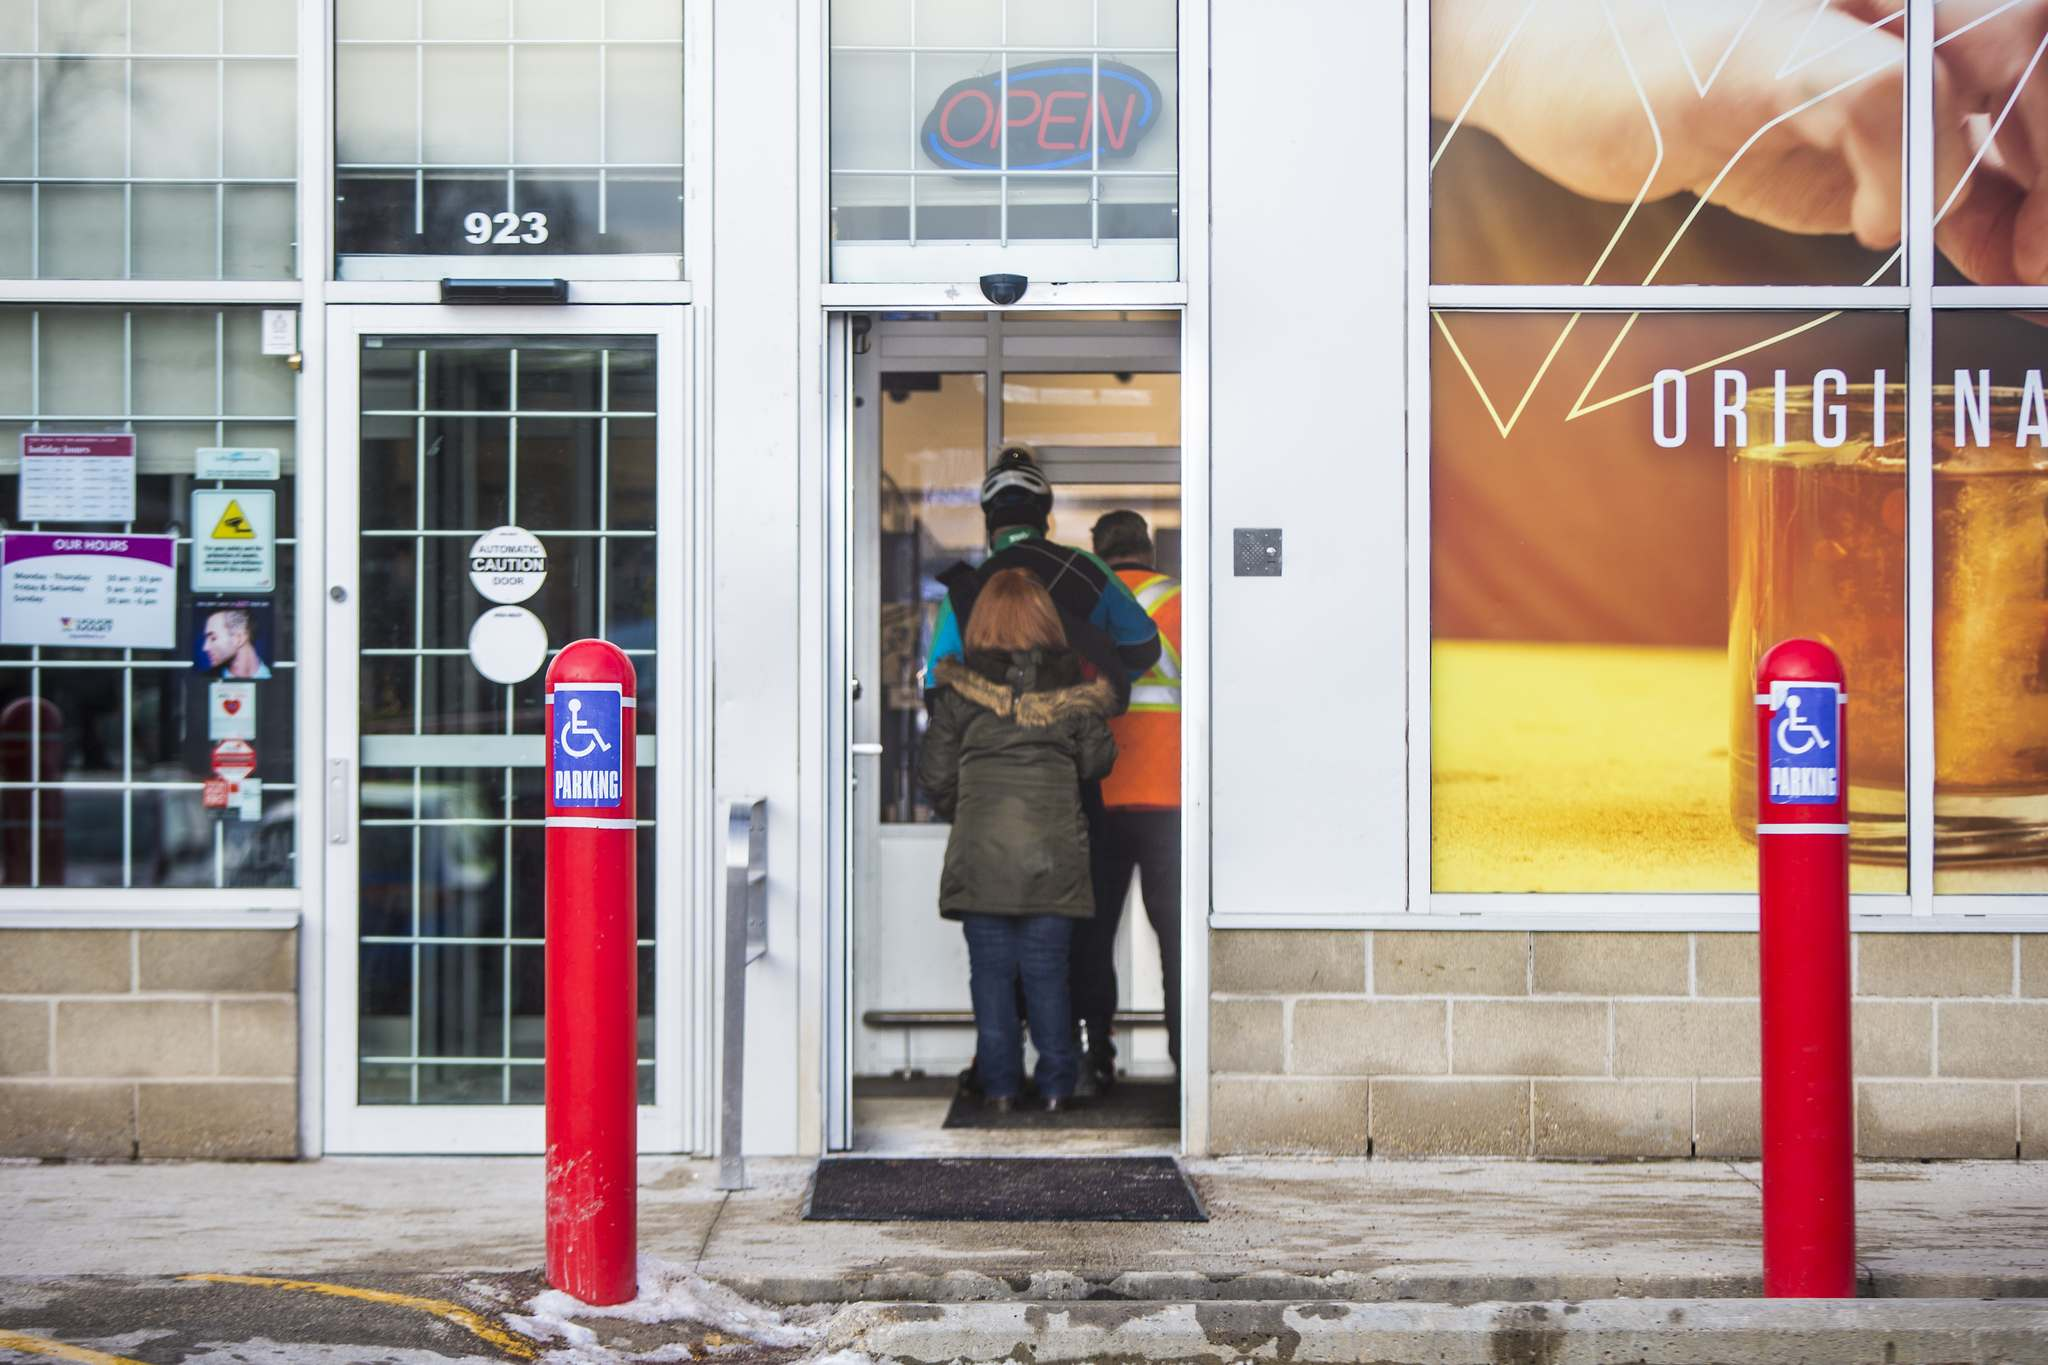 At the Portage Avenue and Burnell Street Liquor Mart, the transaction window is built into the glass wall of the entrance vestibule and security is inside the store at a station with closed-circuit monitors. (Mikaela MacKenzie / Winnipeg Free Press)